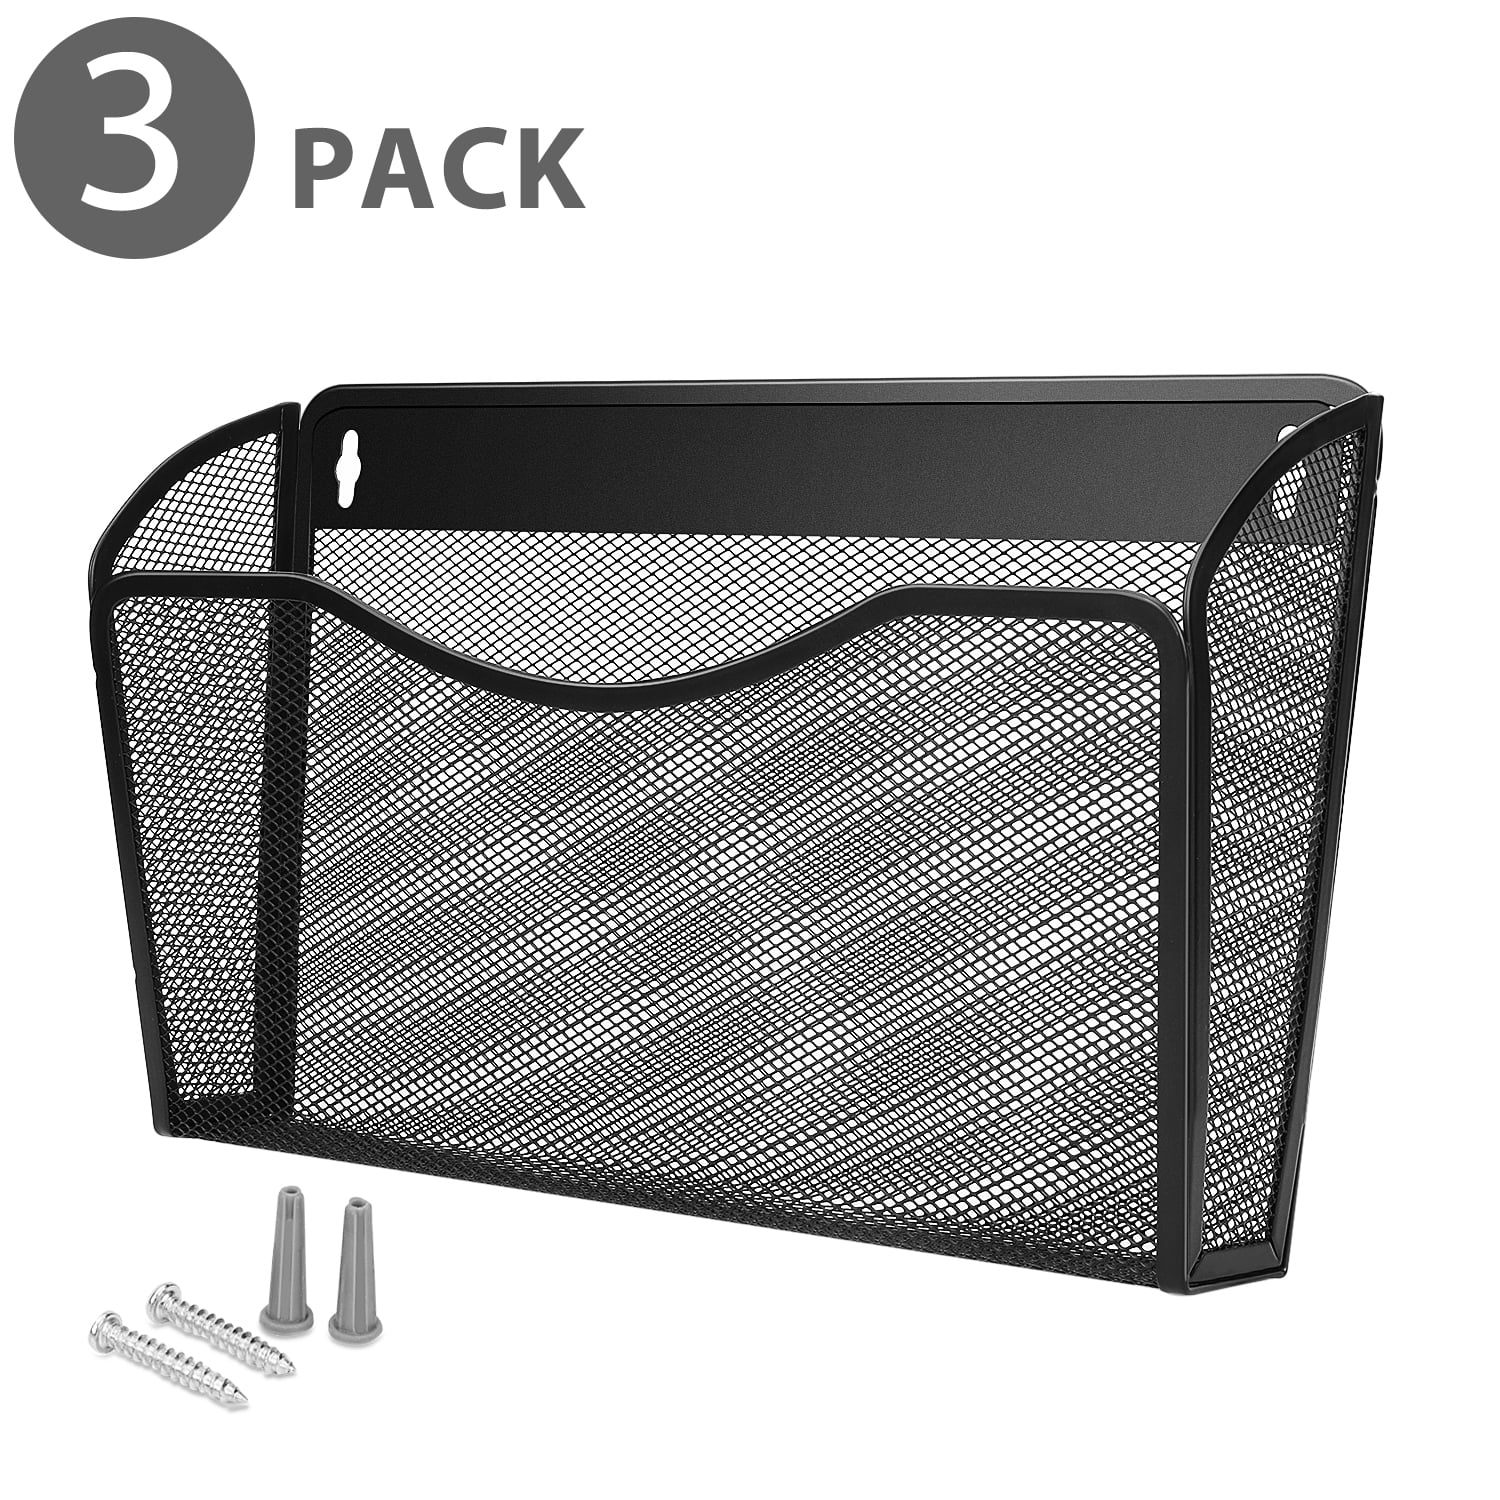 Wall Mail Organizer Paper File Letter Size Pocket Holder Metal Mesh Hanging Storage Basket Rack Single Slot Wall Mount Document Box For Office Home Classroom Black 3 Pack Walmart Com